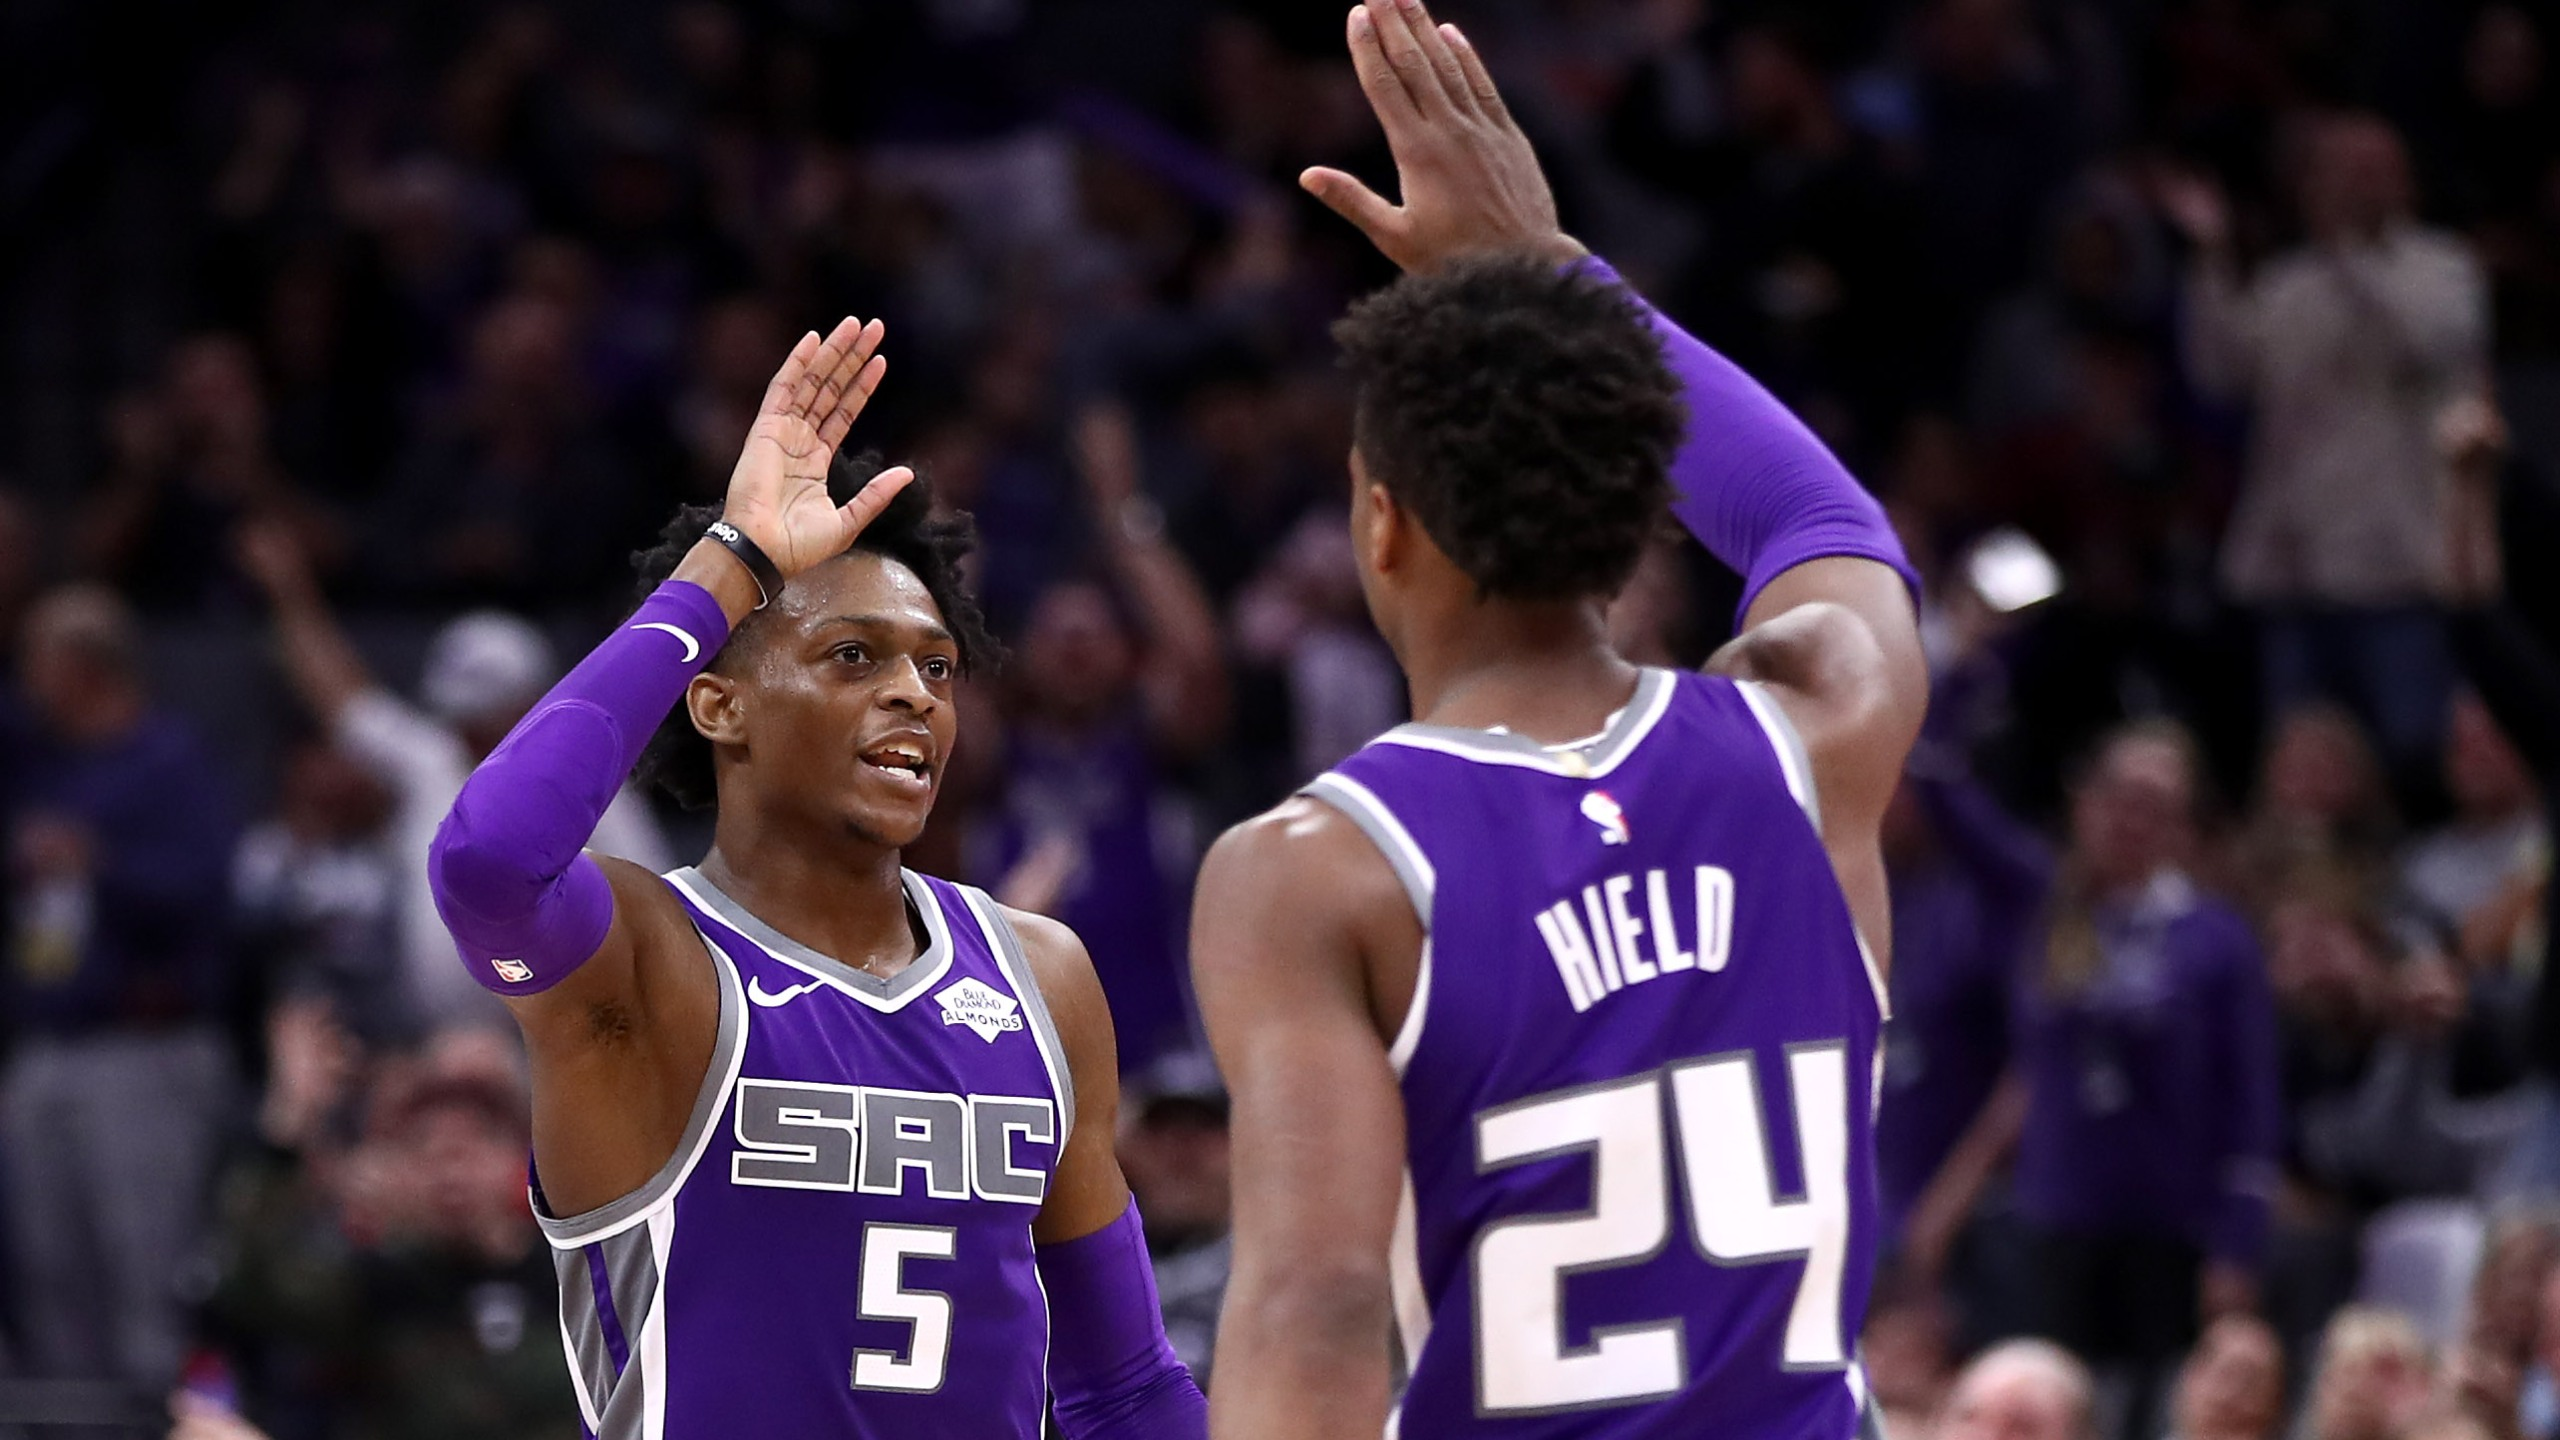 De'Aaron Fox #5 high-fives Buddy Hield #24 of the Sacramento Kings during their game against the Portland Trail Blazers at Golden 1 Center on Jan. 14, 2019, in Sacramento. (Credit: Ezra Shaw/Getty Images)